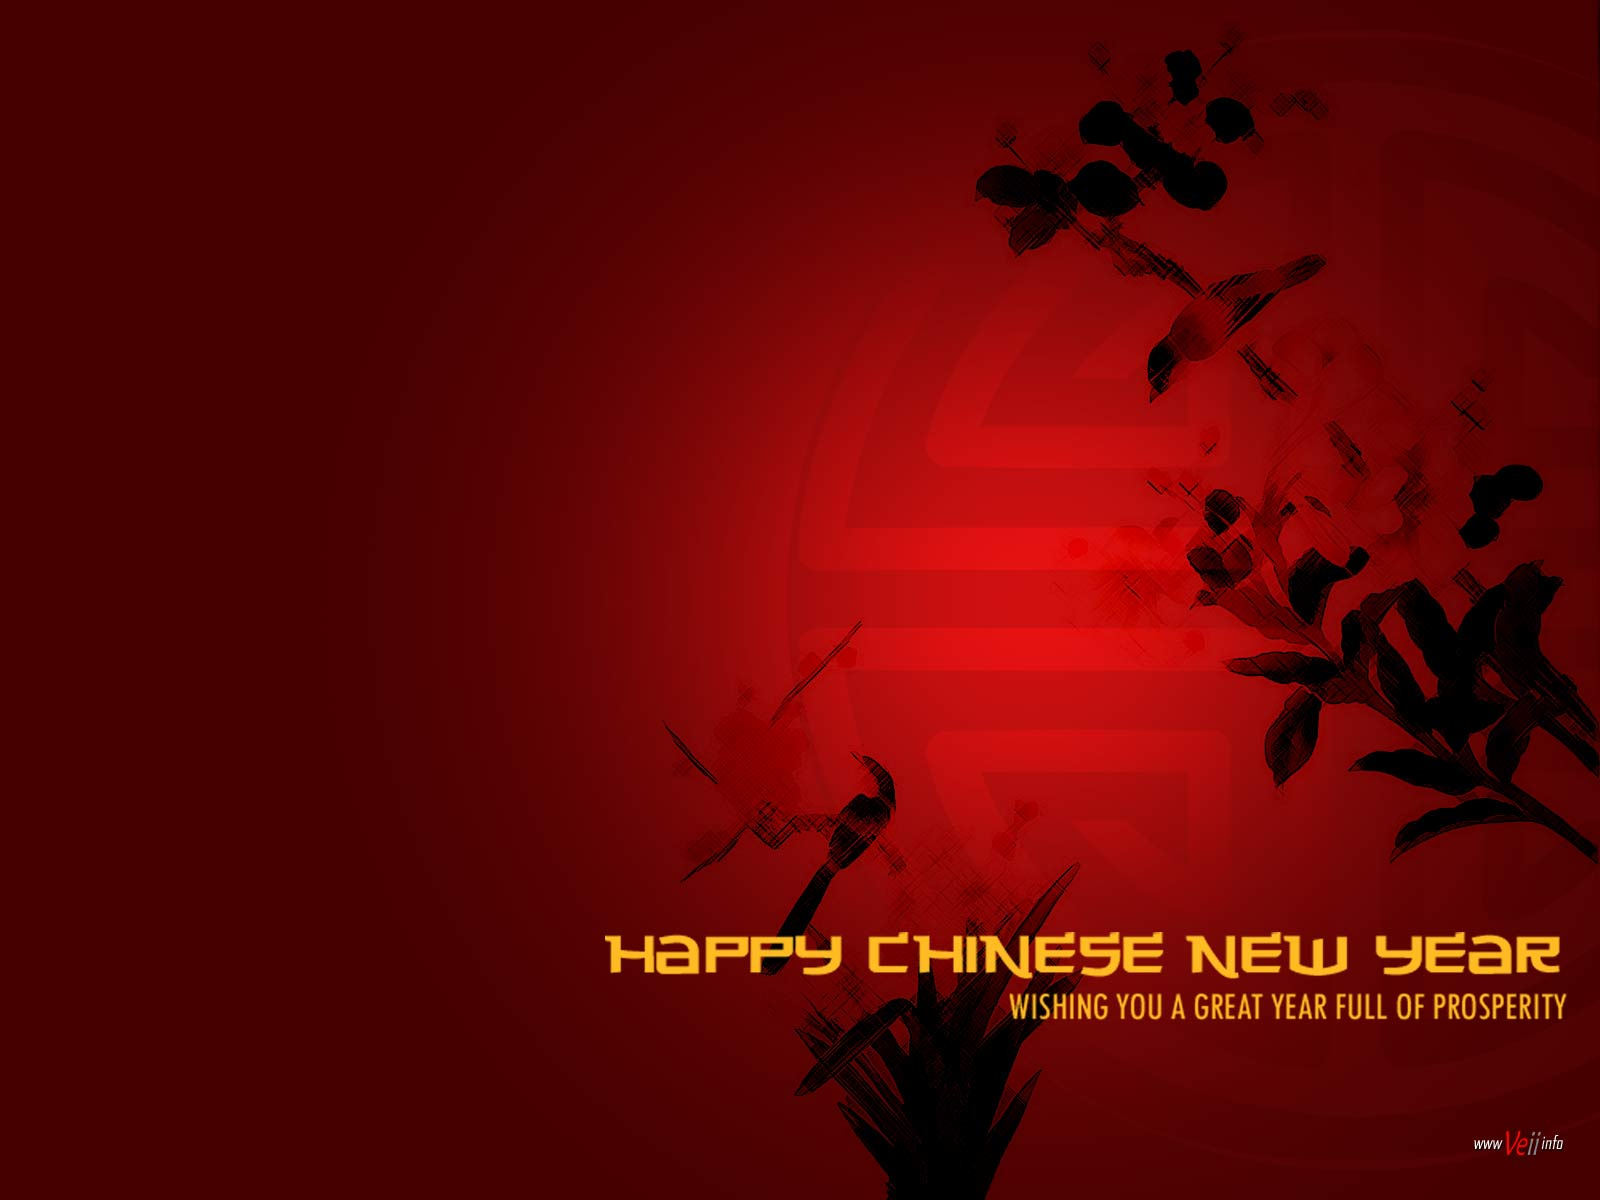 Chinese New Year Or Spring Festival Is A Time Of Blessings Originally It Family Gathering After The Cold Winter